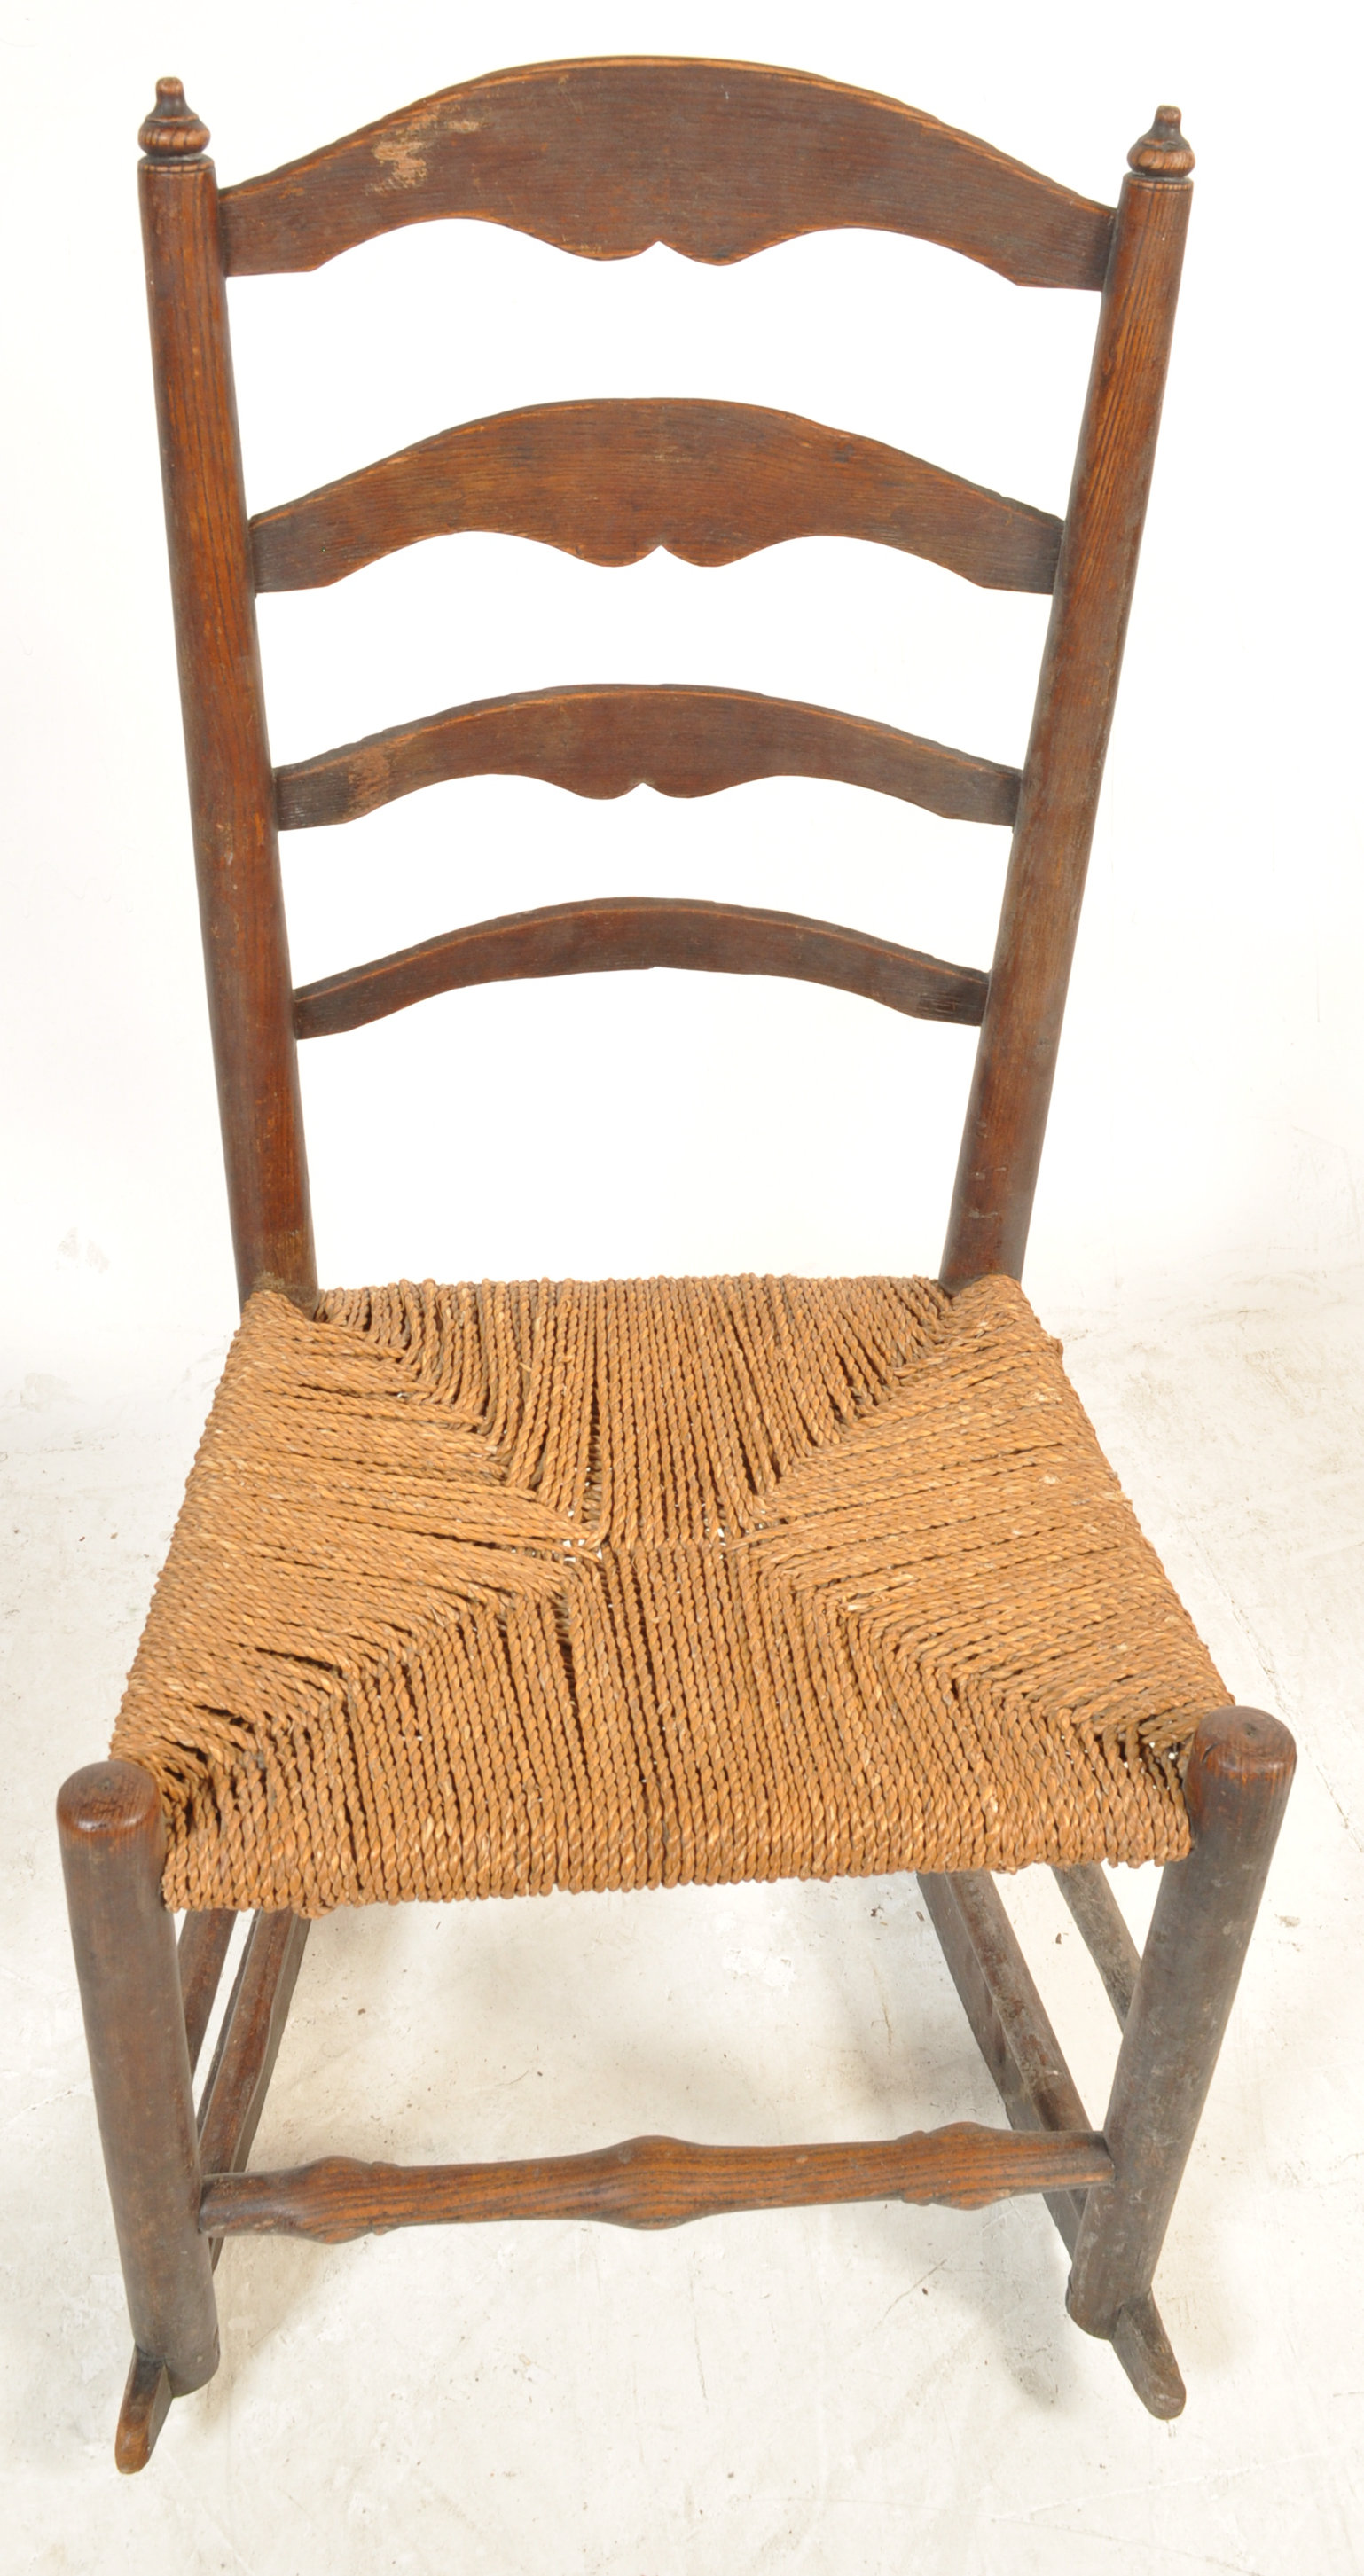 GEORGE II 18TH CENTURY RECLINING NORTH COUNTRY CHAIR WITH ANOTHER - Image 4 of 7